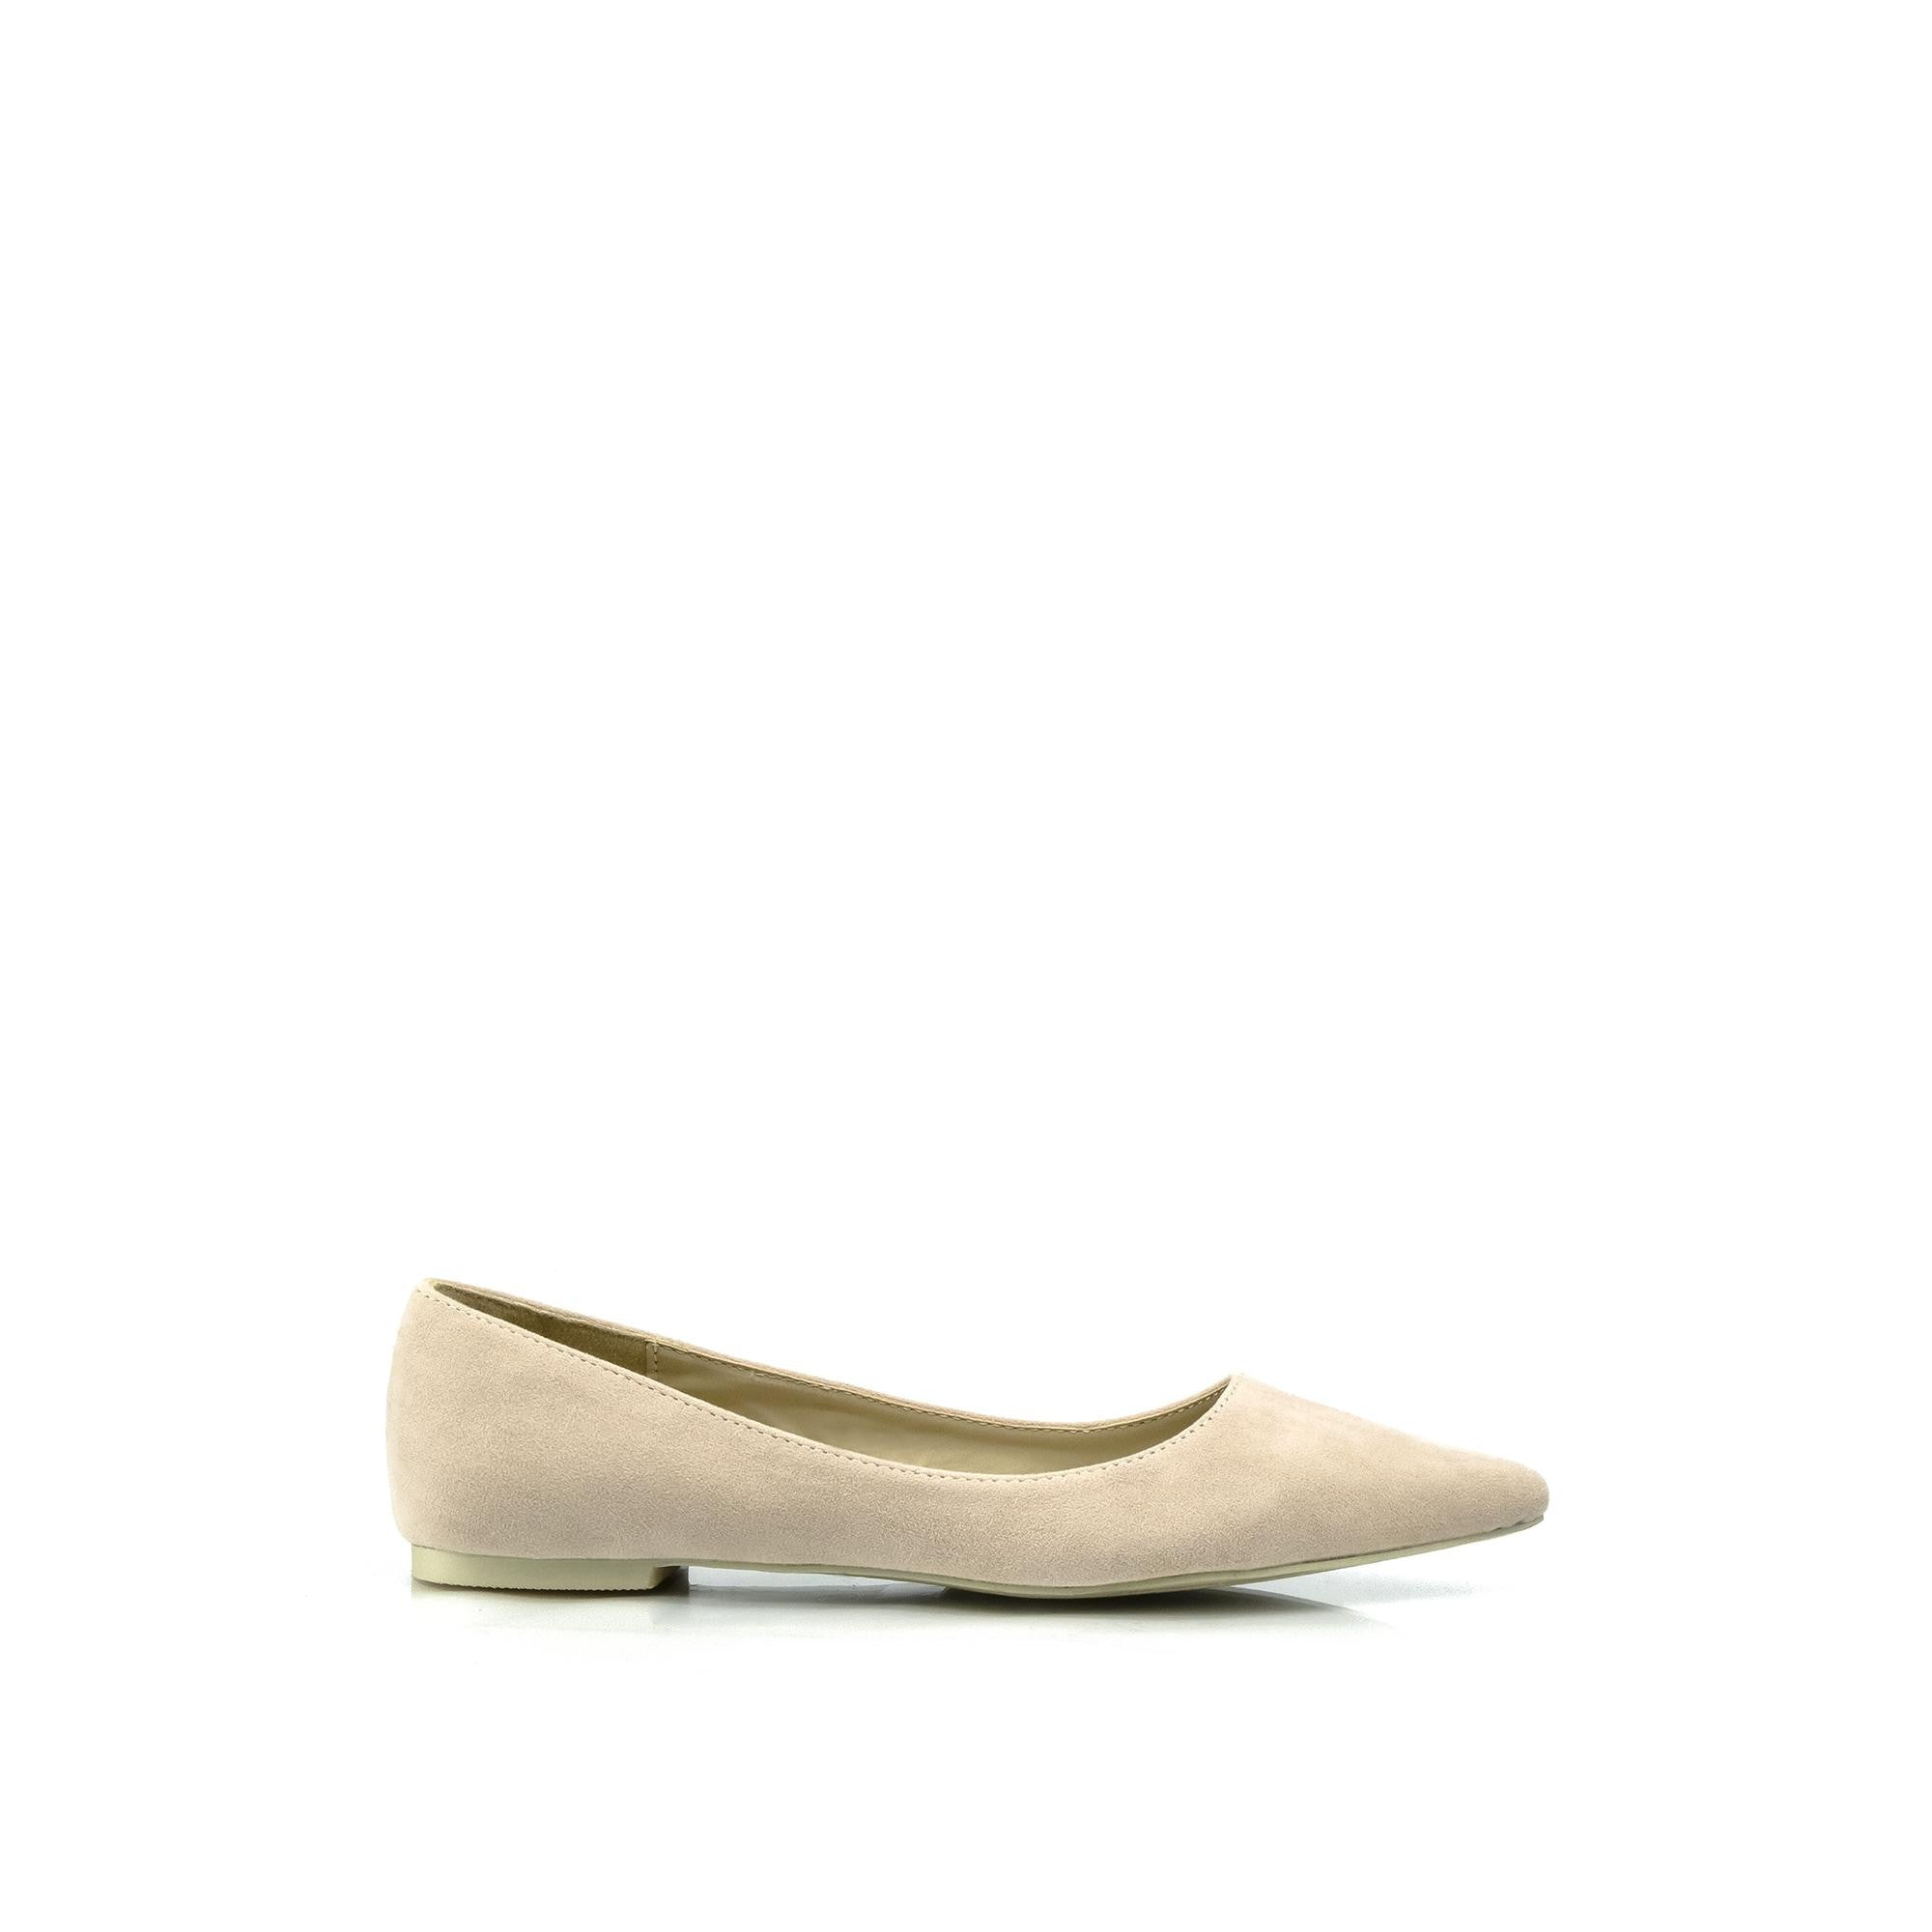 LEYLA Pointed Toe Flats